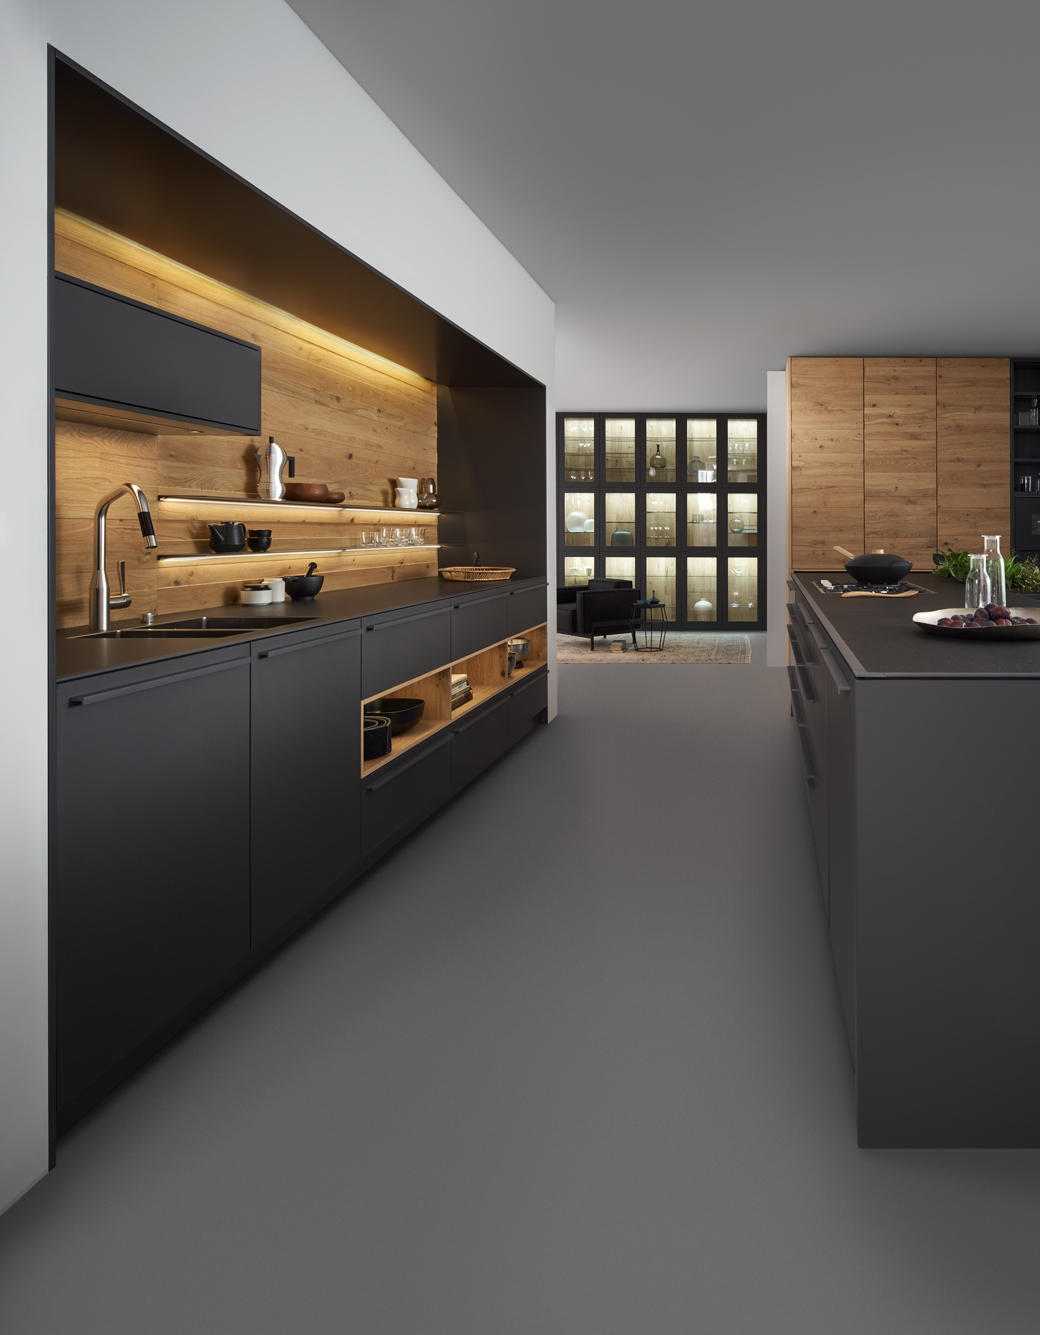 Exceptional Are You Looking For Black Kitchen Cabinets In Miami, FL? If You Are Looking  For A Bold Statement For Your Kitchen Design, There Are Few Choices Bolder  Than ...